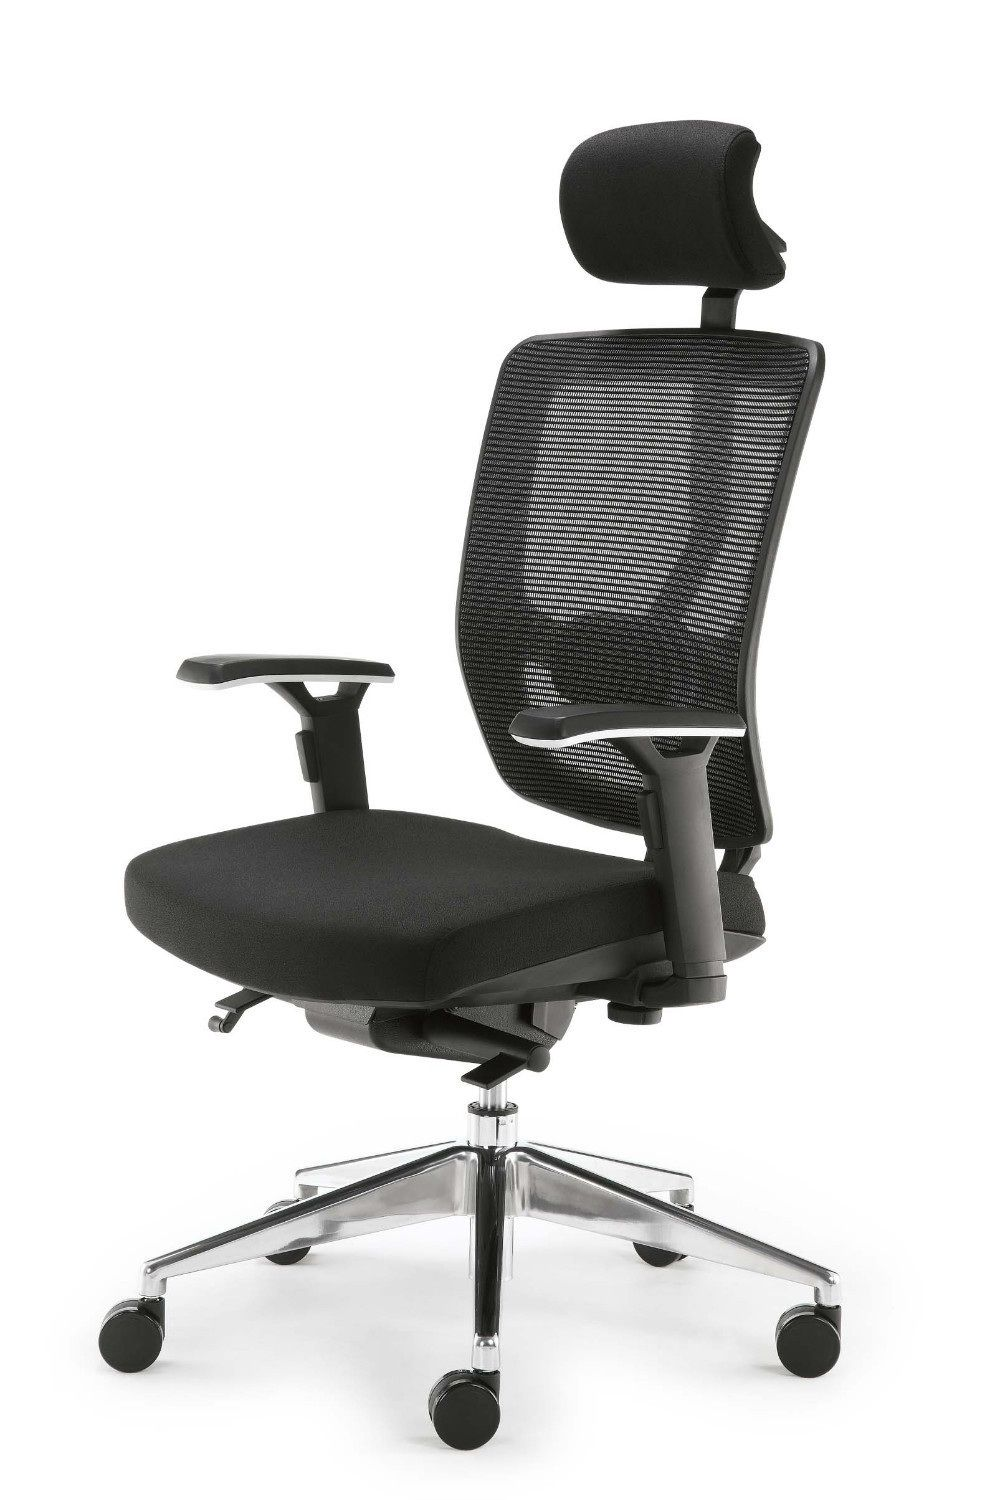 High backed office chair modern home office furniture